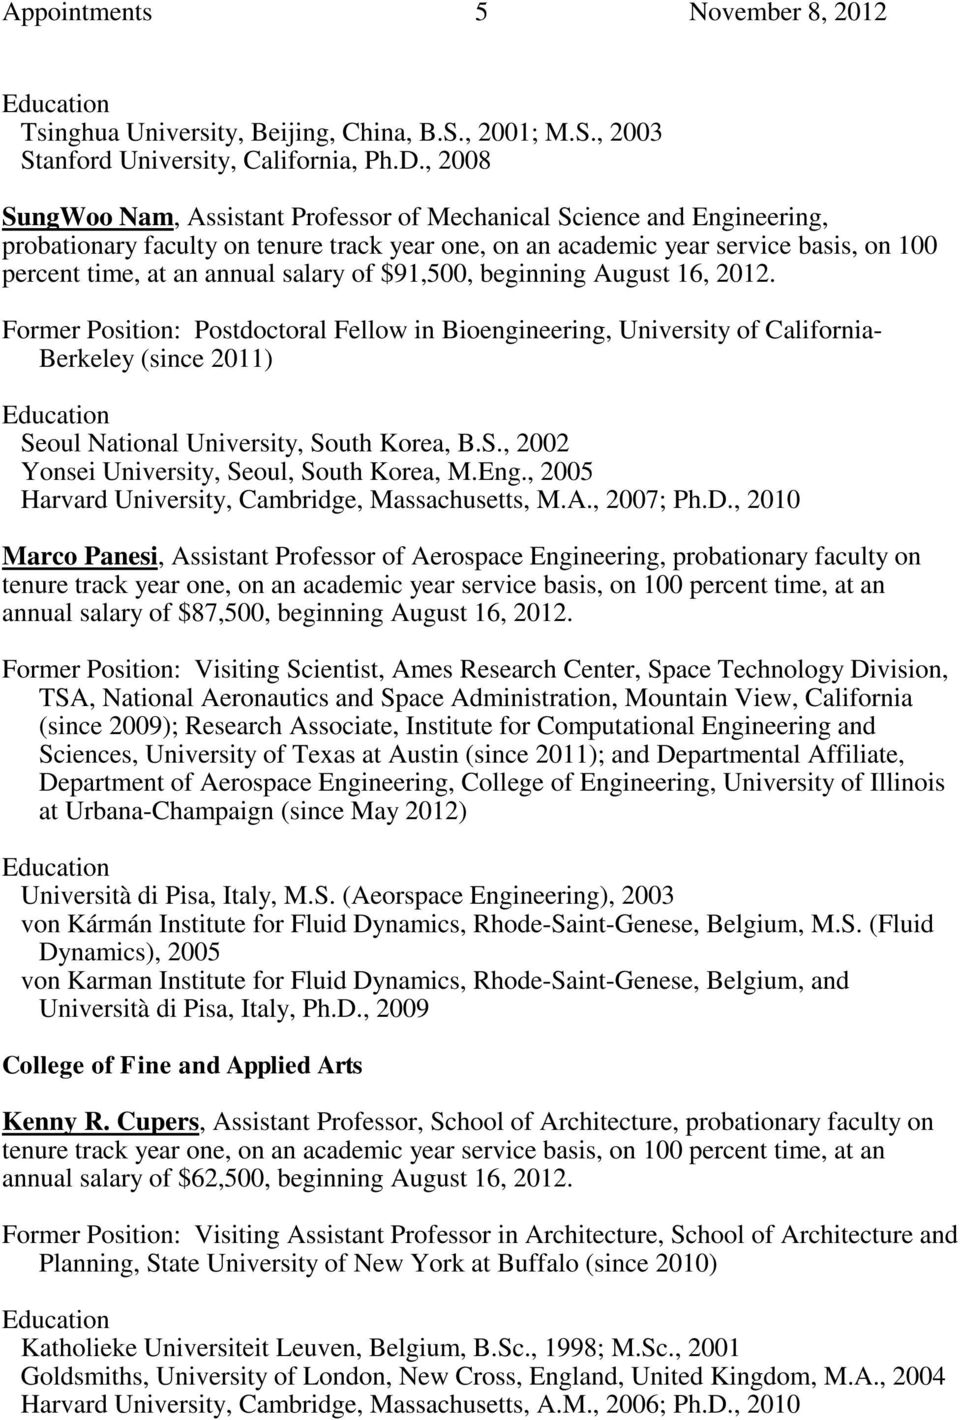 APPOINTMENTS TO THE FACULTY, ADMINISTRATIVE/PROFESSIONAL